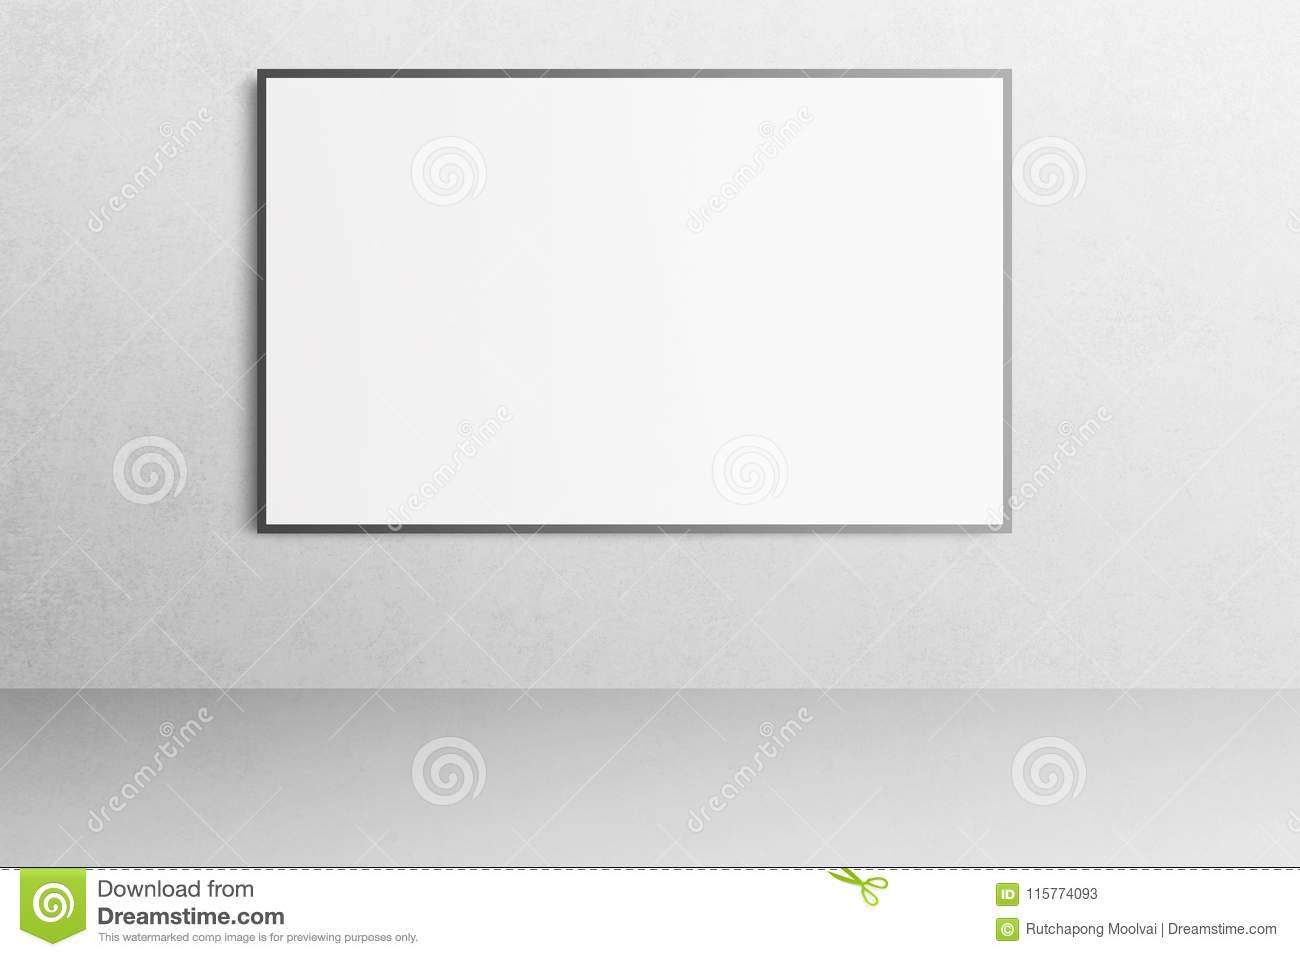 White office interior with blank poster mockup on the wall.